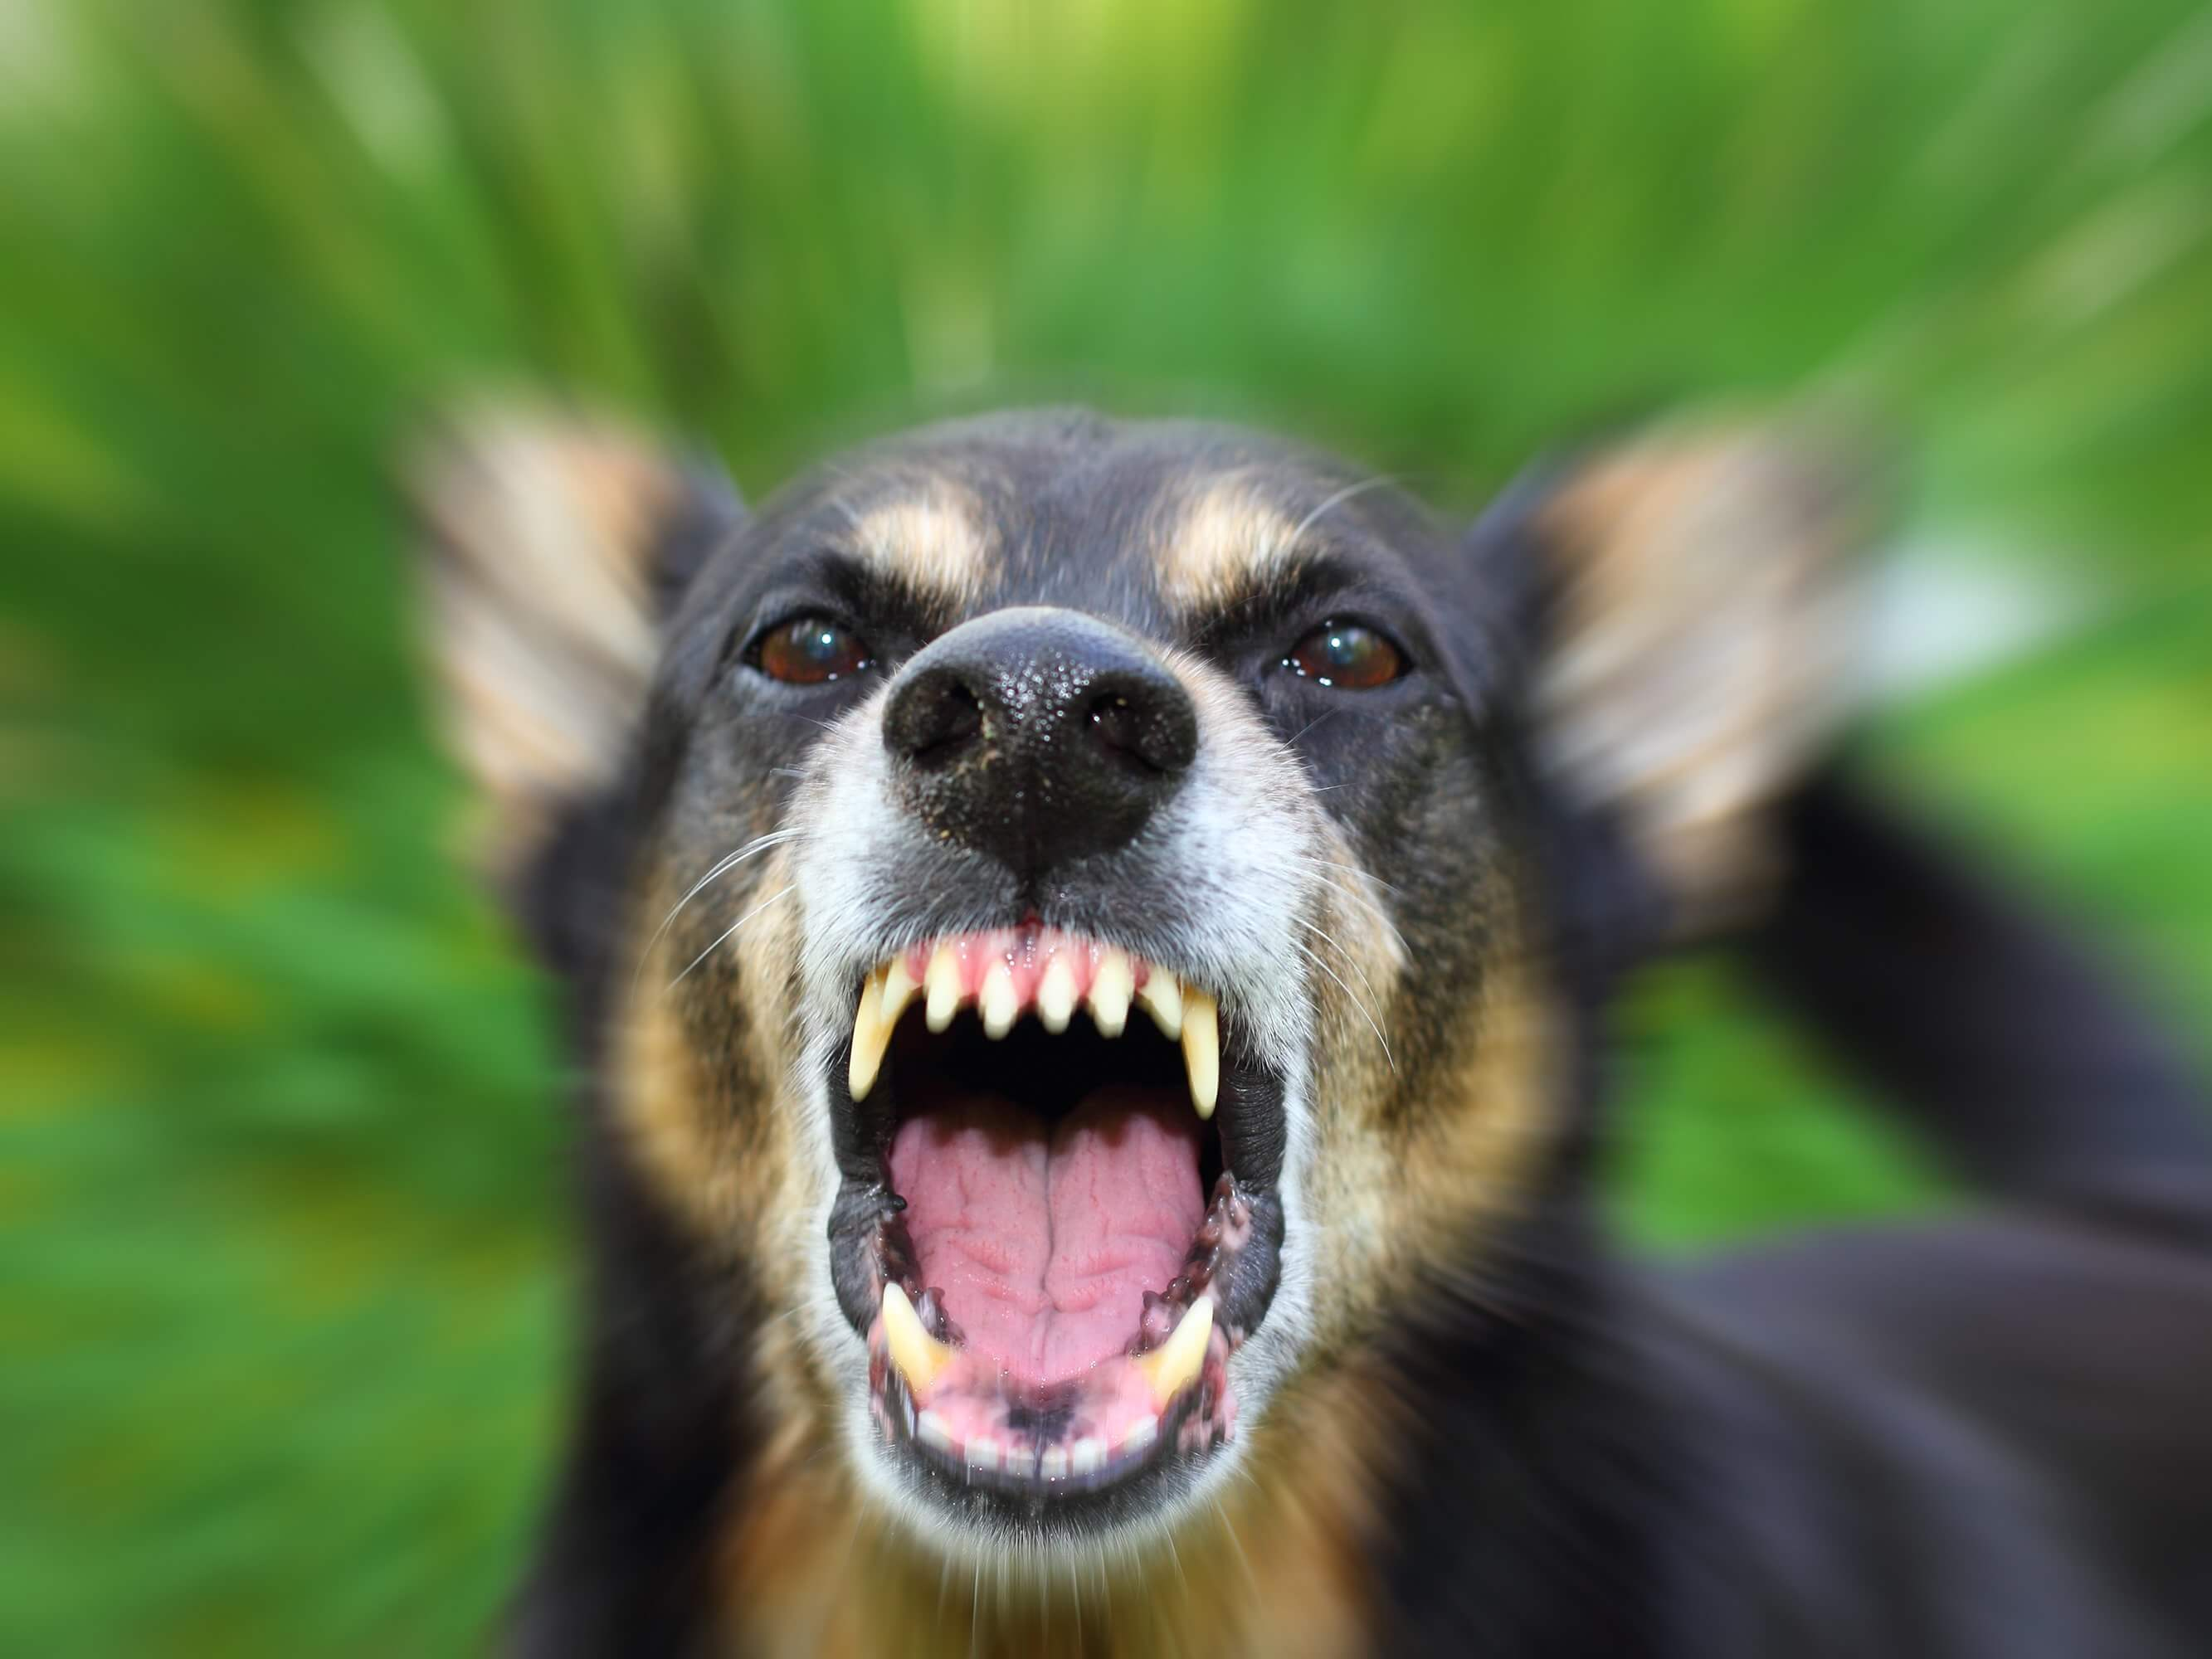 Filing Dog Bite Lawsuits When Children are Attacked